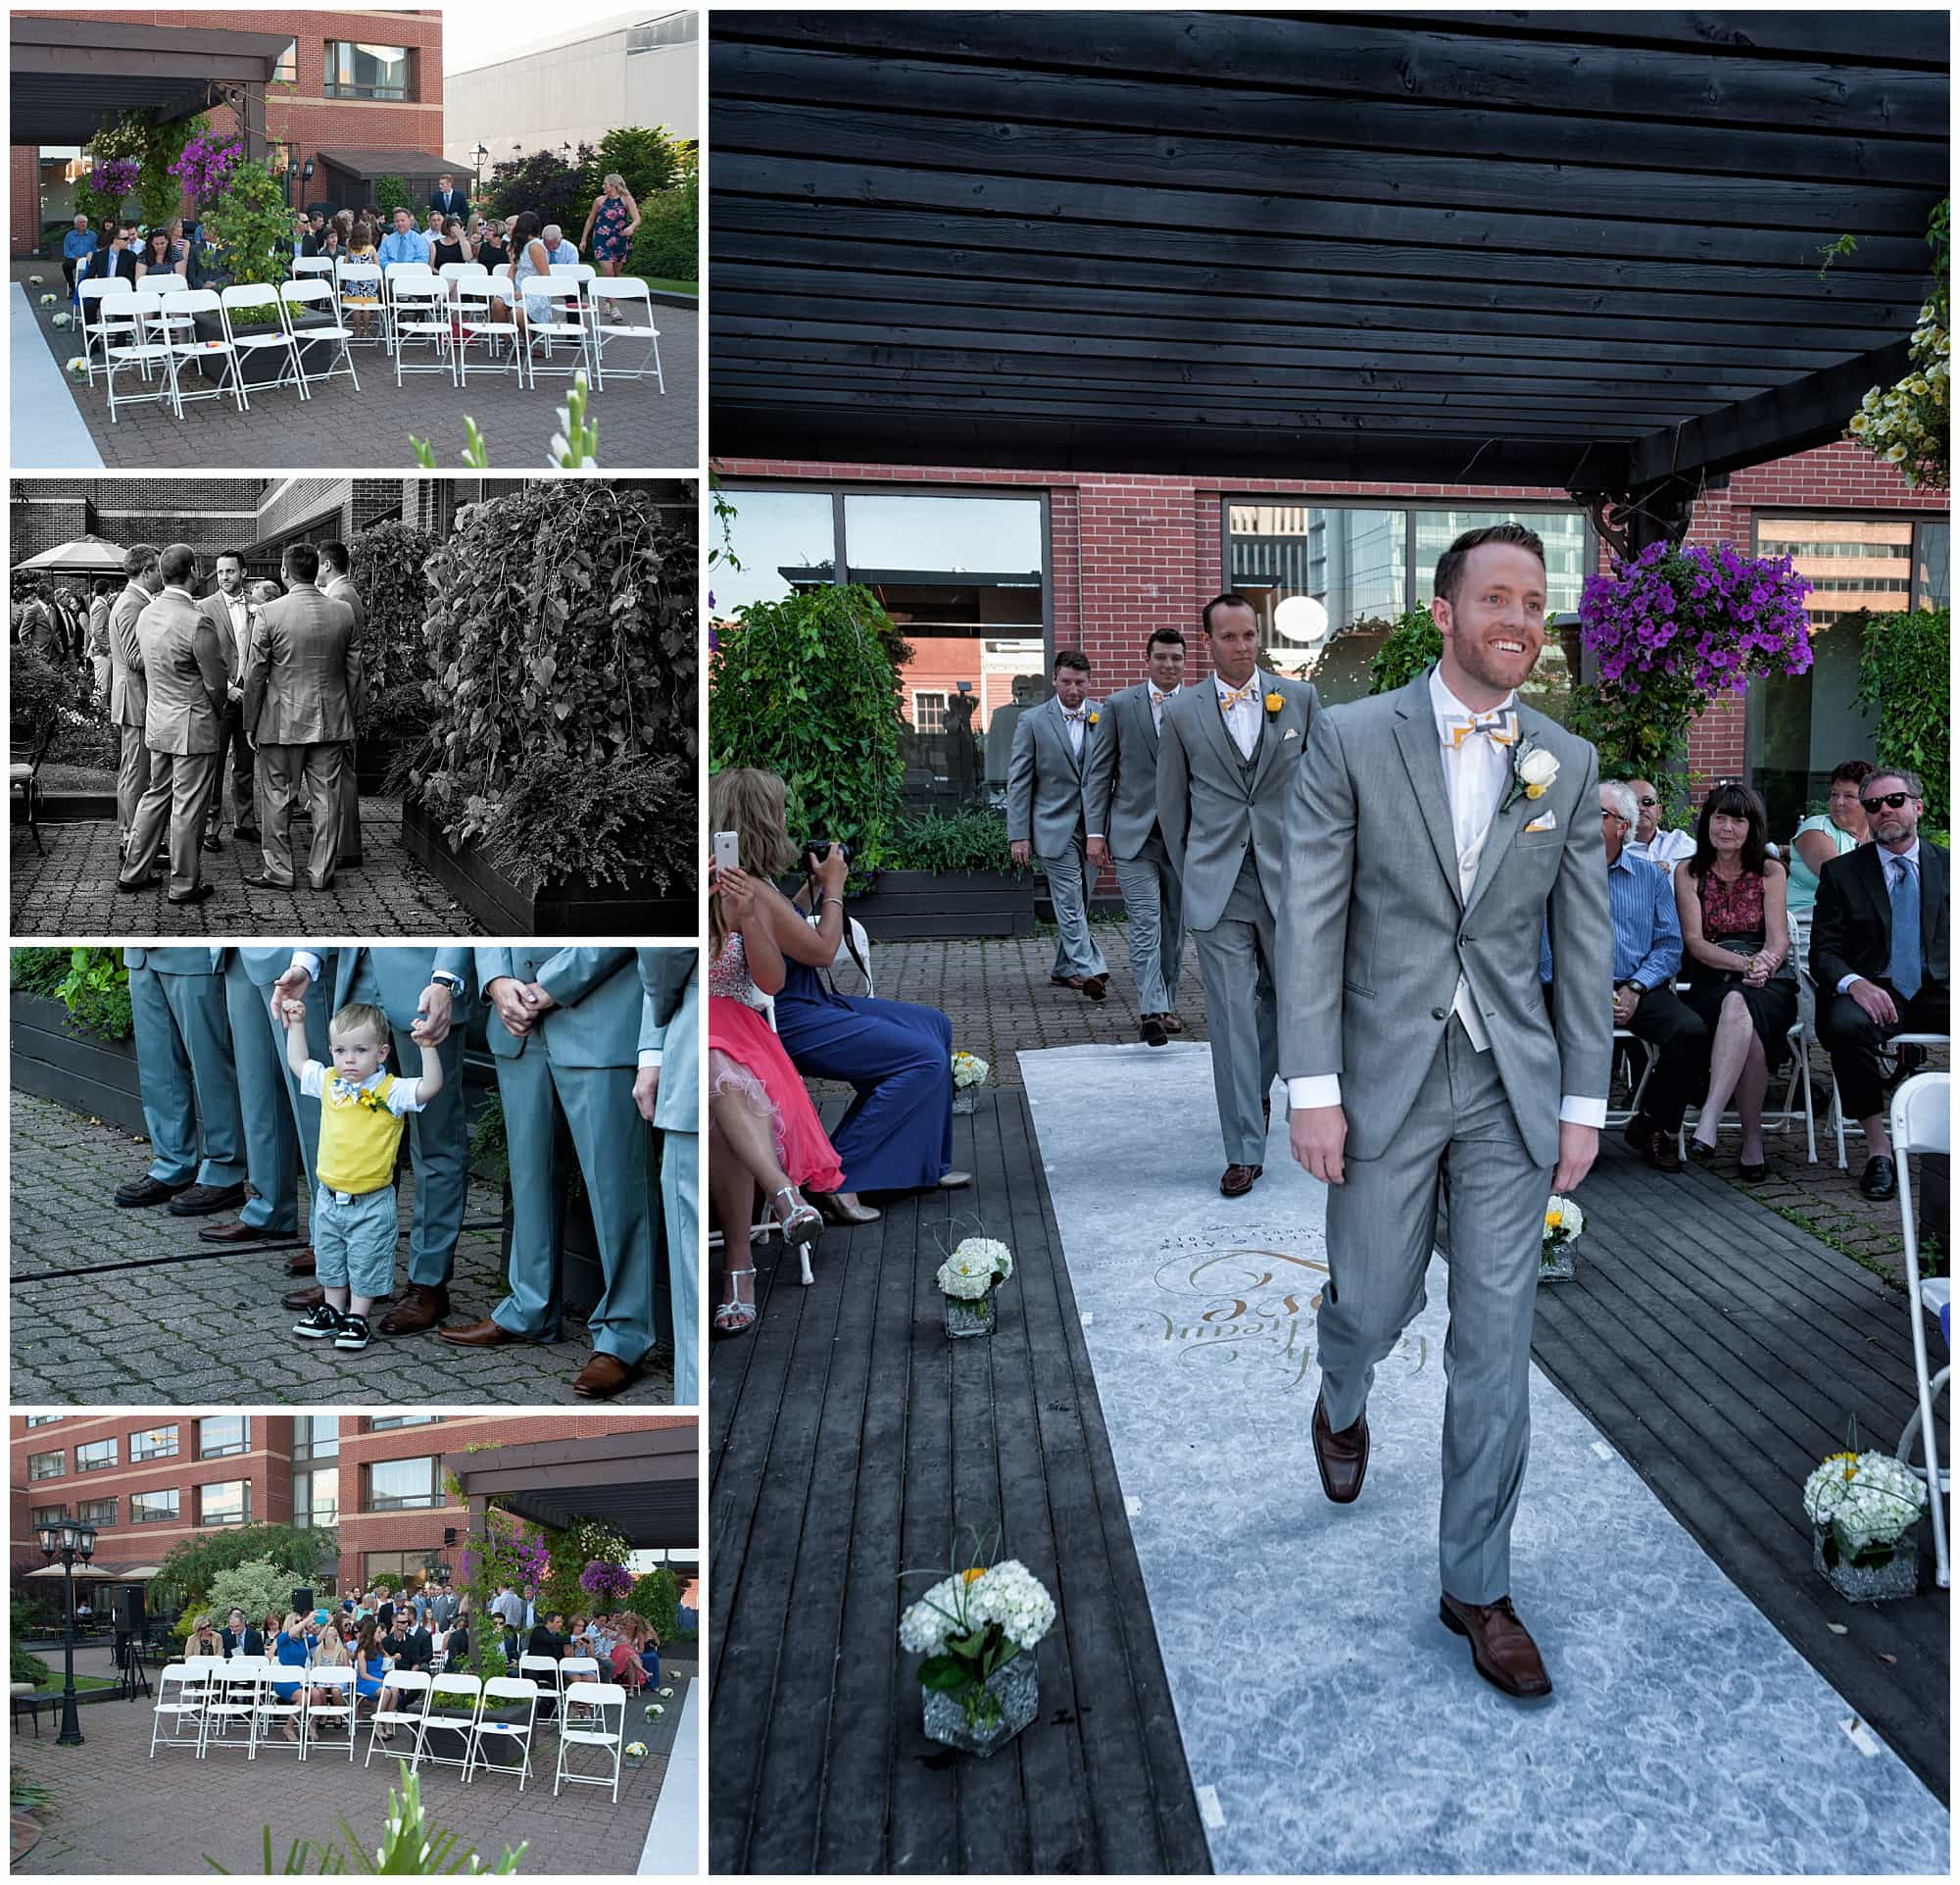 The groom walks up the aisle to take his place at the alter during a wedding ceremony at the Prince George Hotel in Halifax.